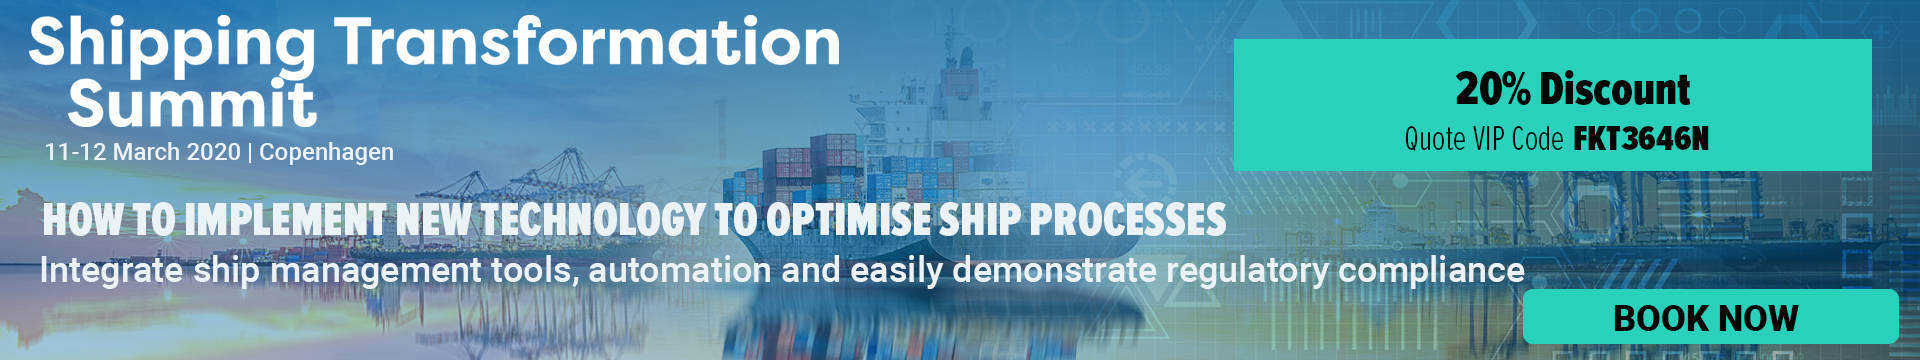 shipping transformation summit